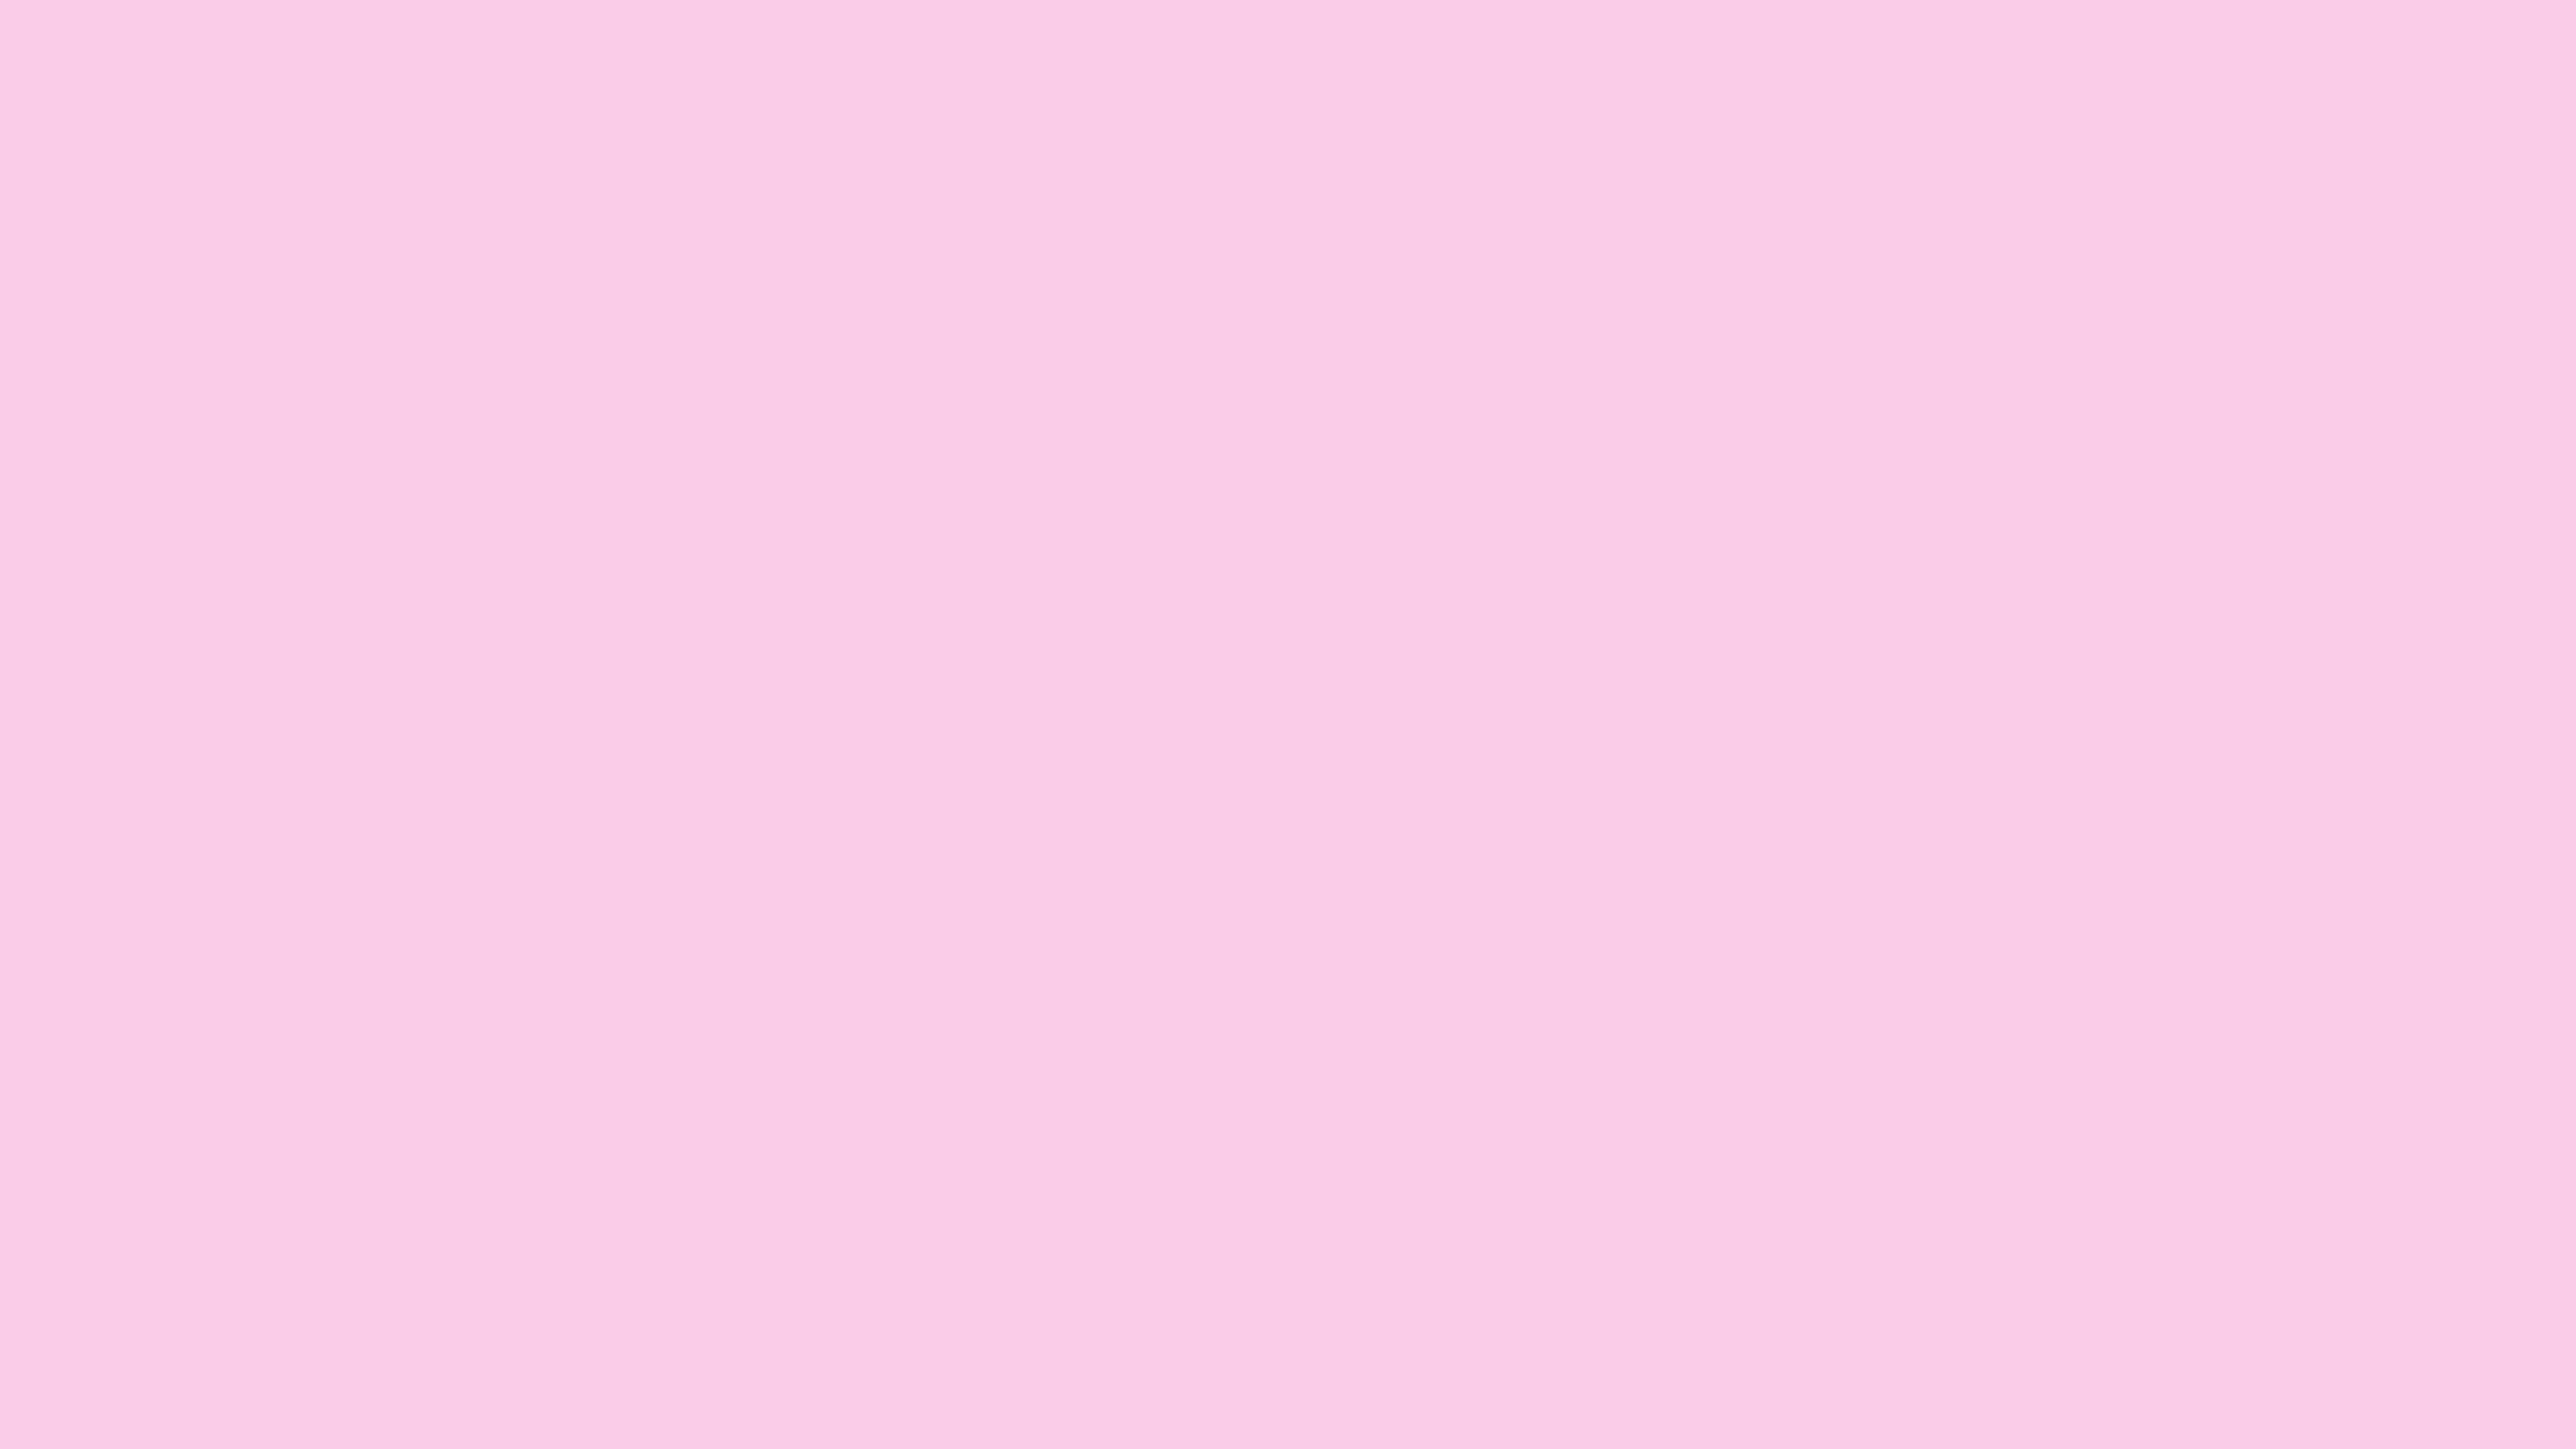 4096x2304 Classic Rose Solid Color Background